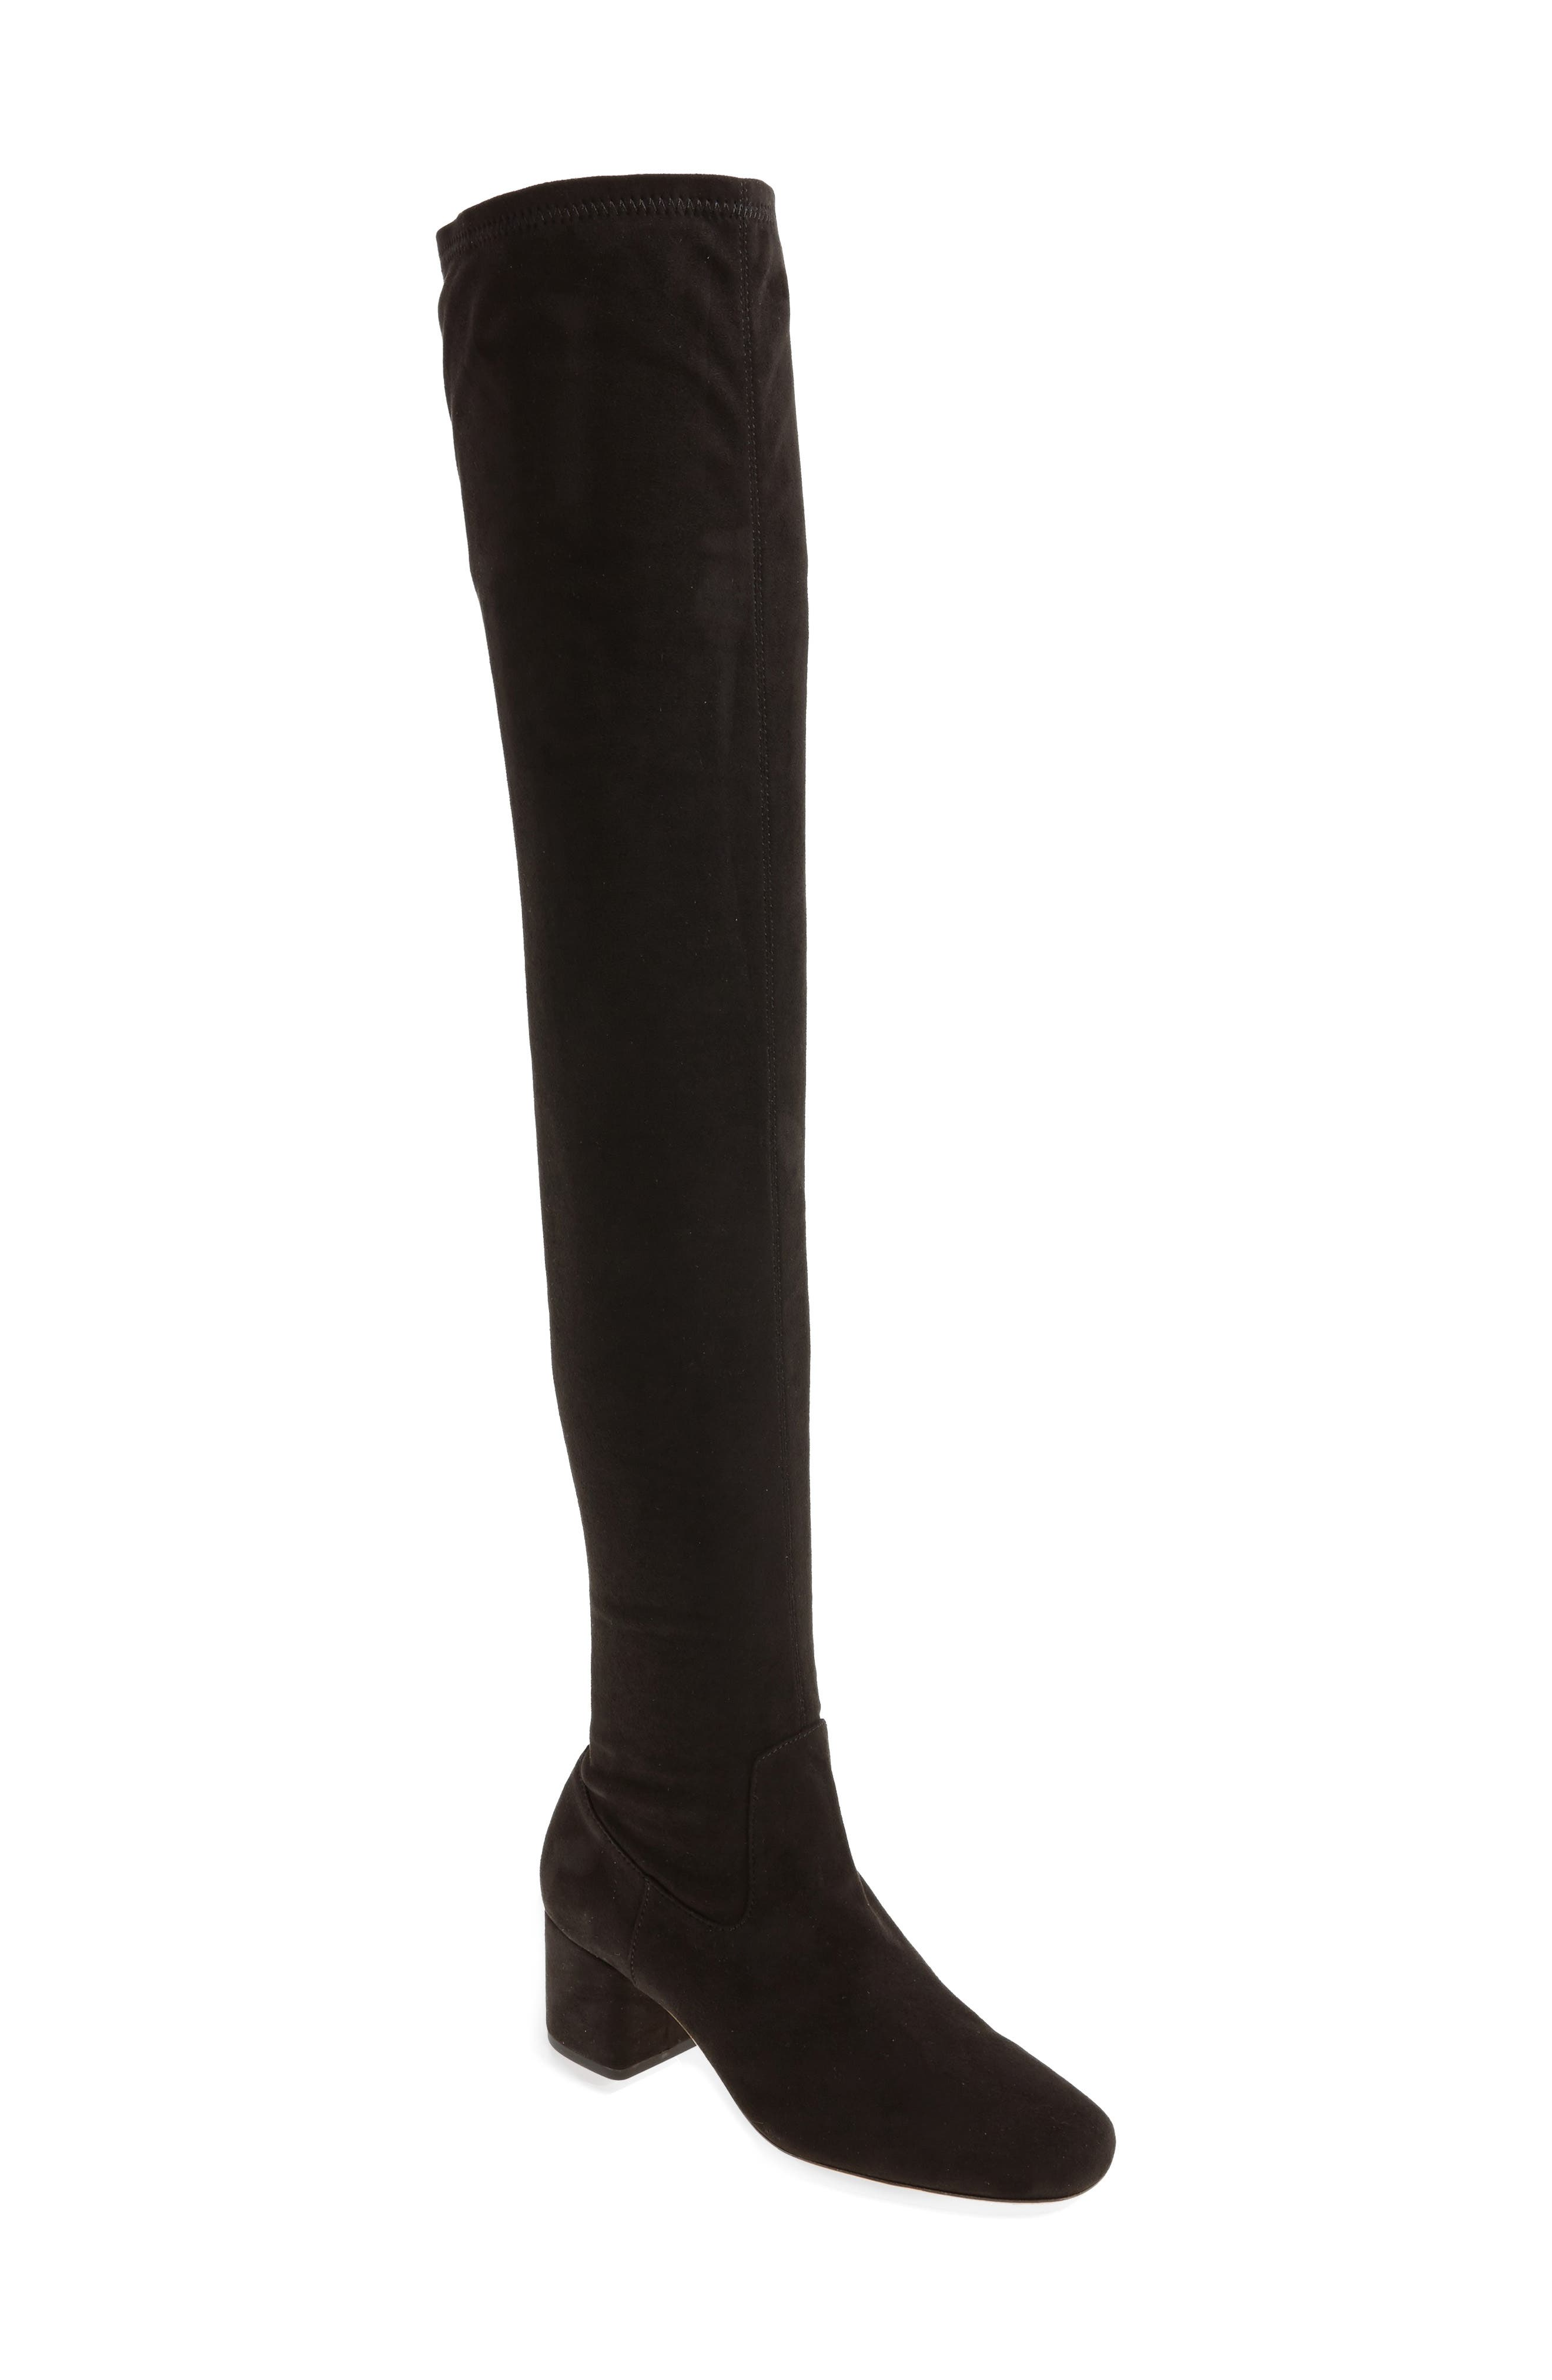 Amani Over the Knee Boot,                         Main,                         color, Black Suede